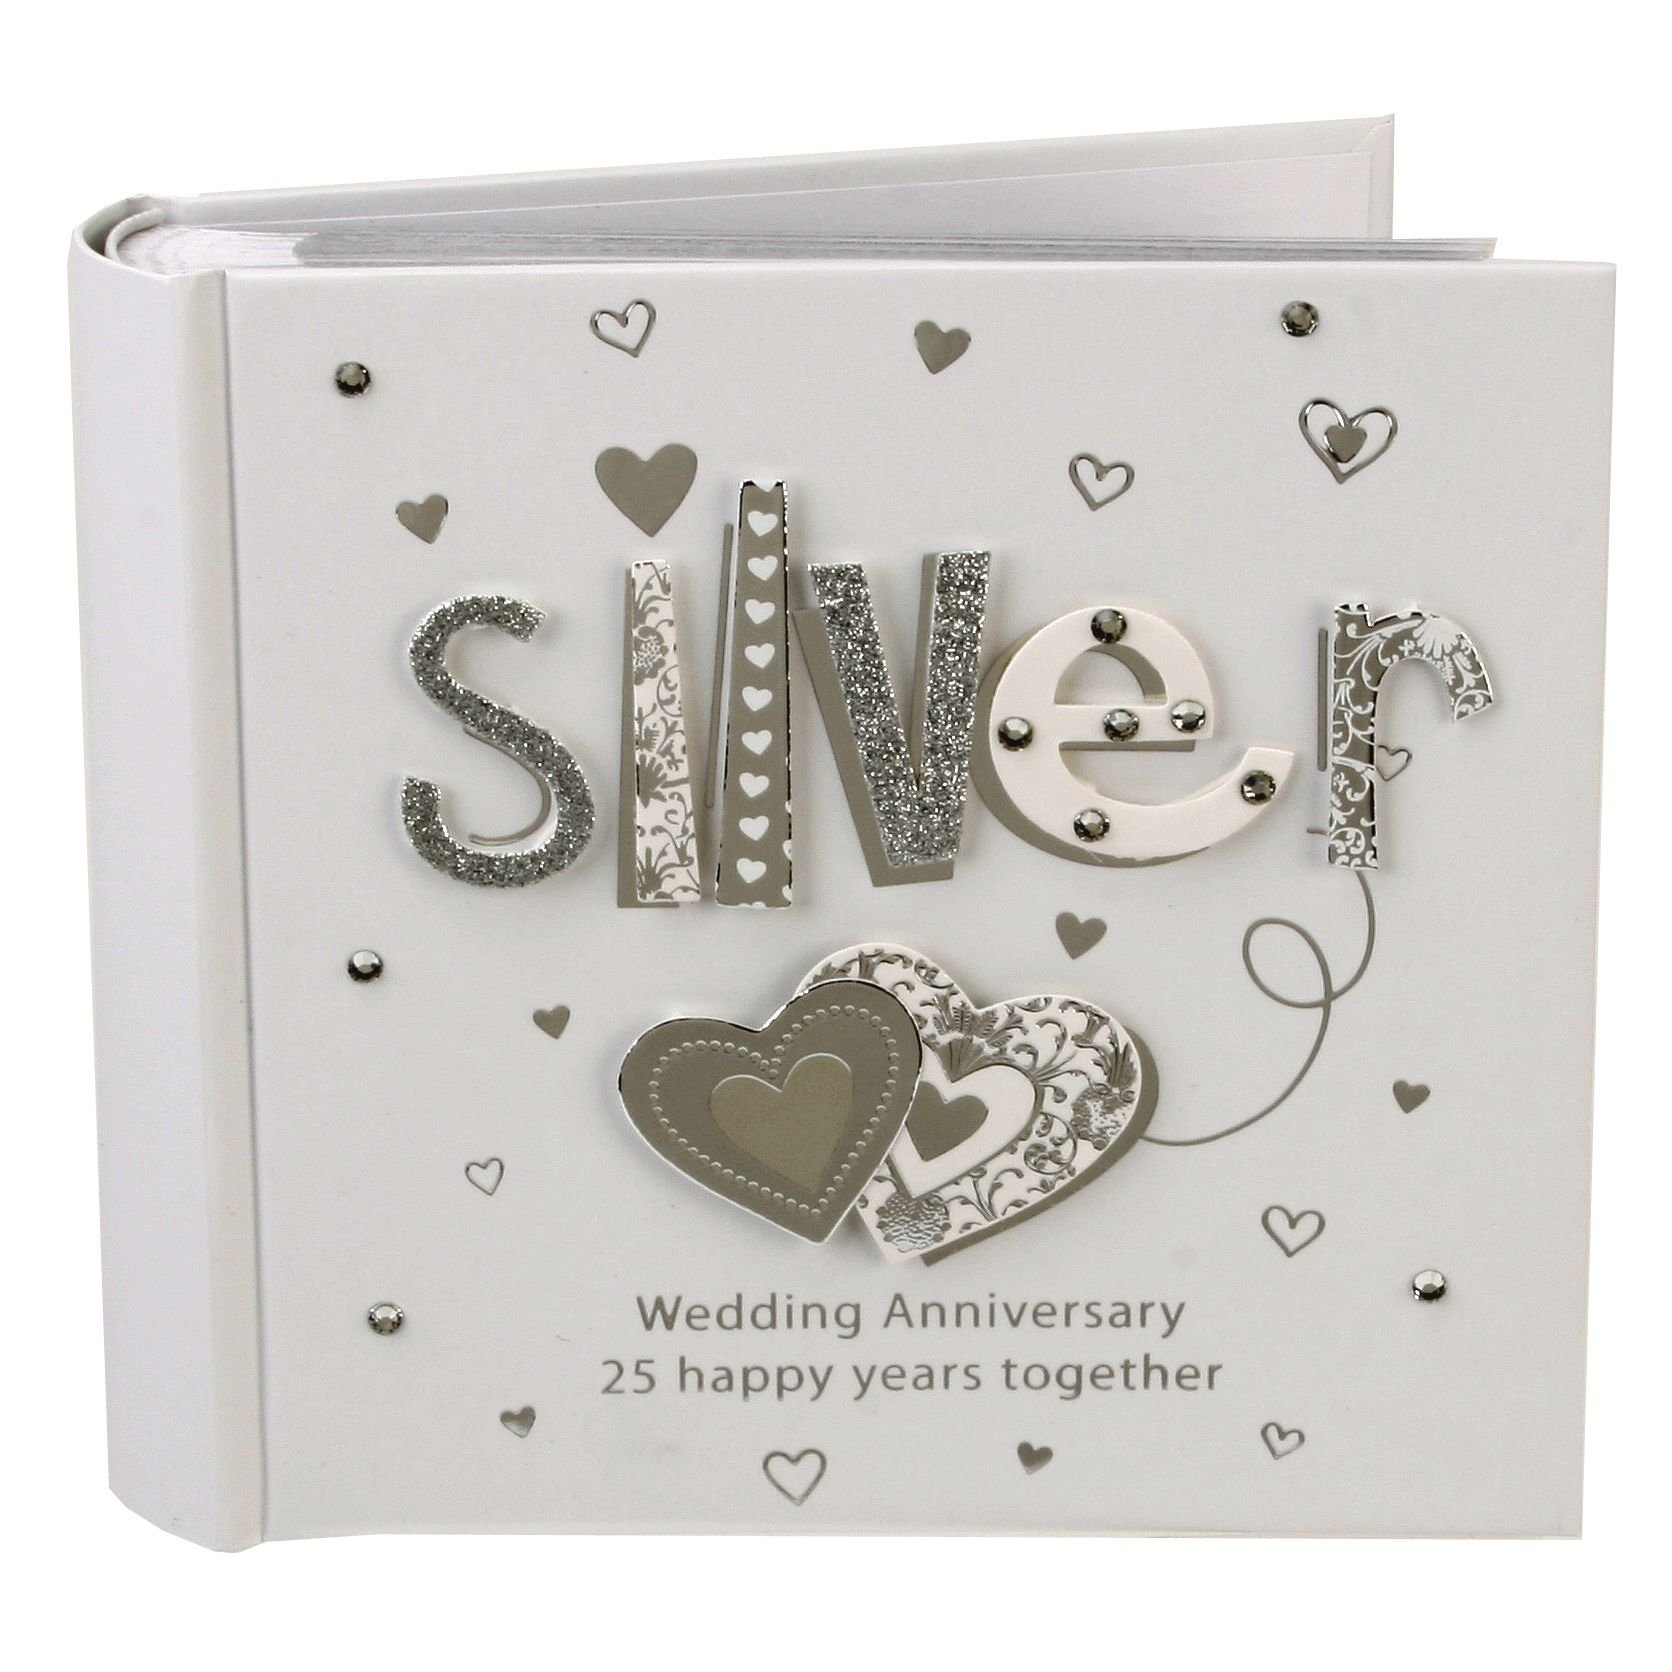 10 Great Parents 25Th Anniversary Gift Ideas wedding anniversary gifts 25th wedding anniversary gifts for parents uk 6 2020